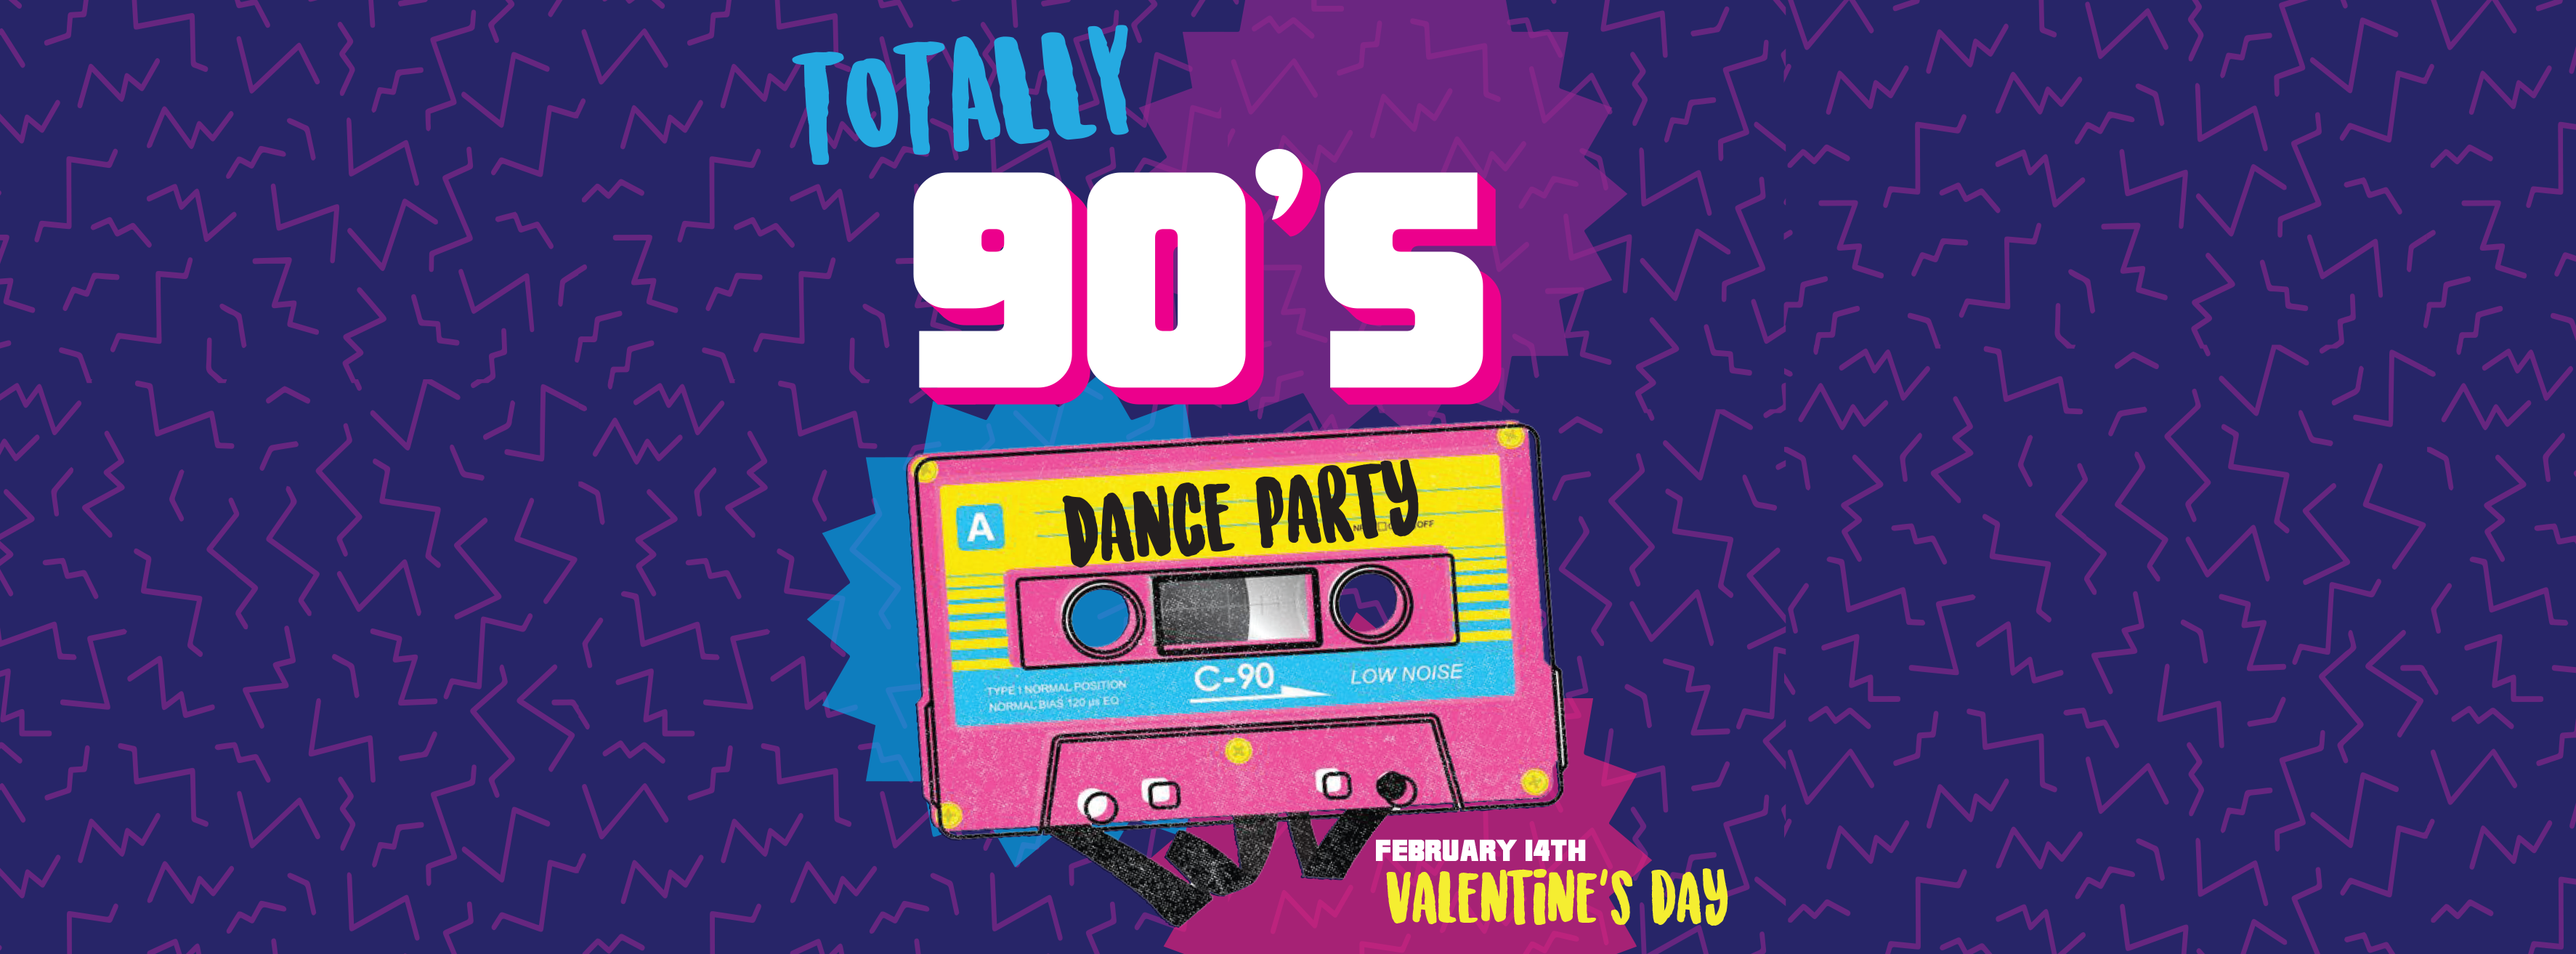 Totally 90s Dance Party Karbach Brewing Co